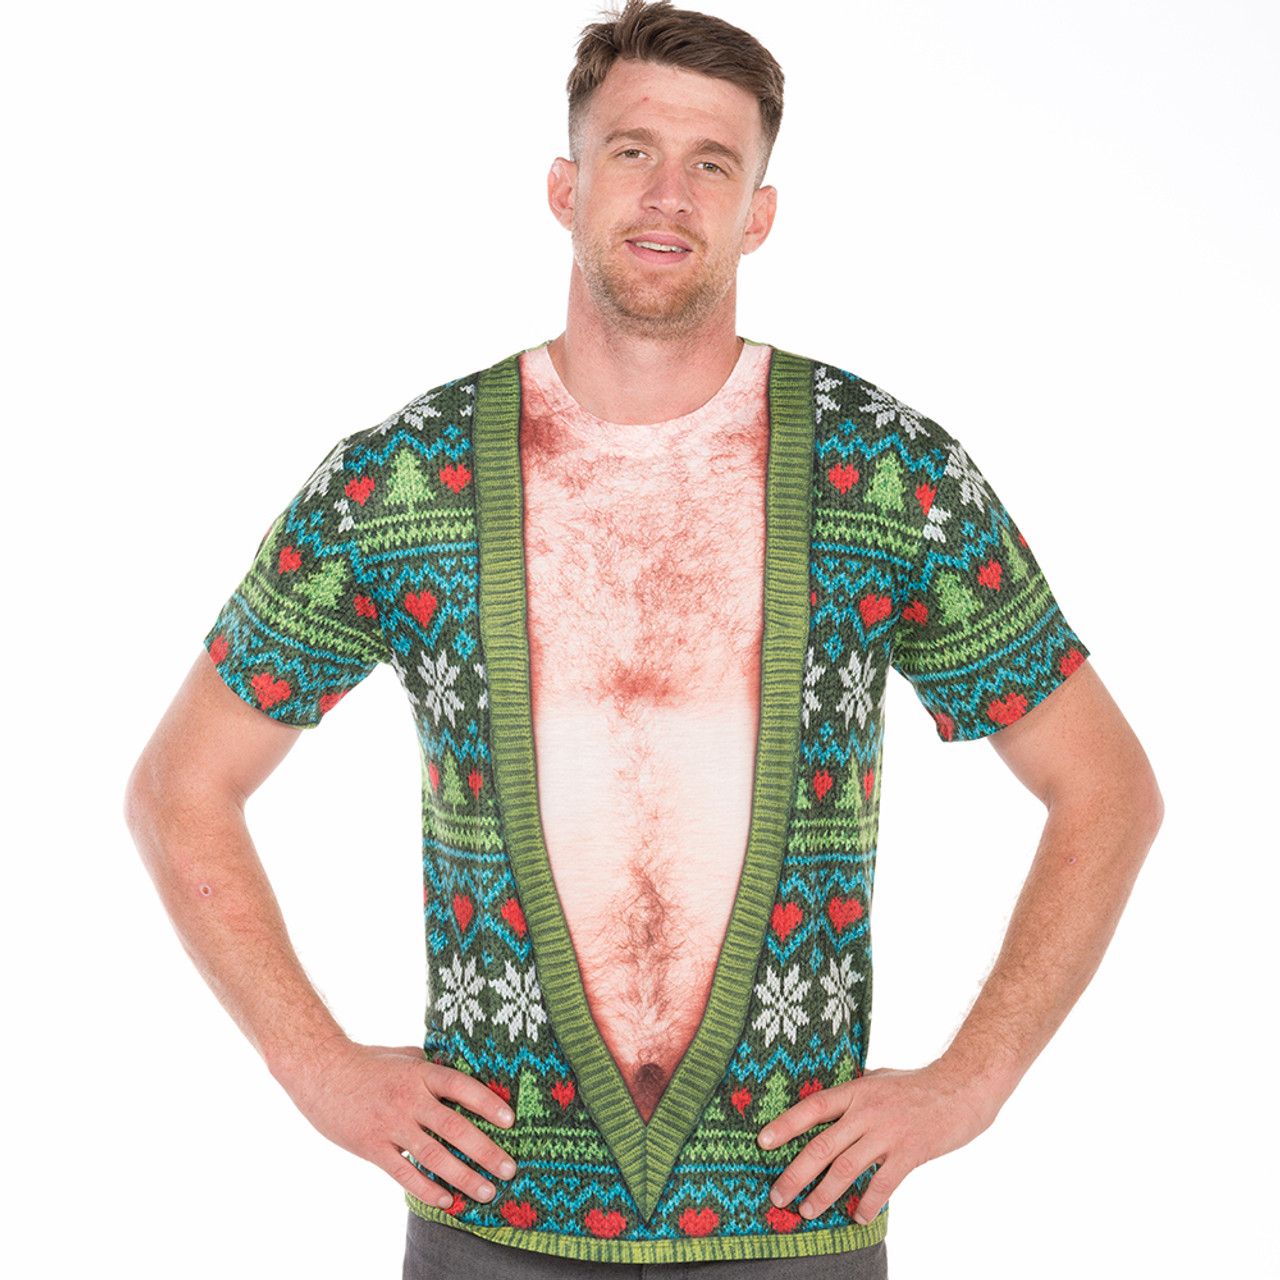 40193478e32 Belly V-Neck Ugly Christmas Sweater Short Sleeve by Faux Real ...